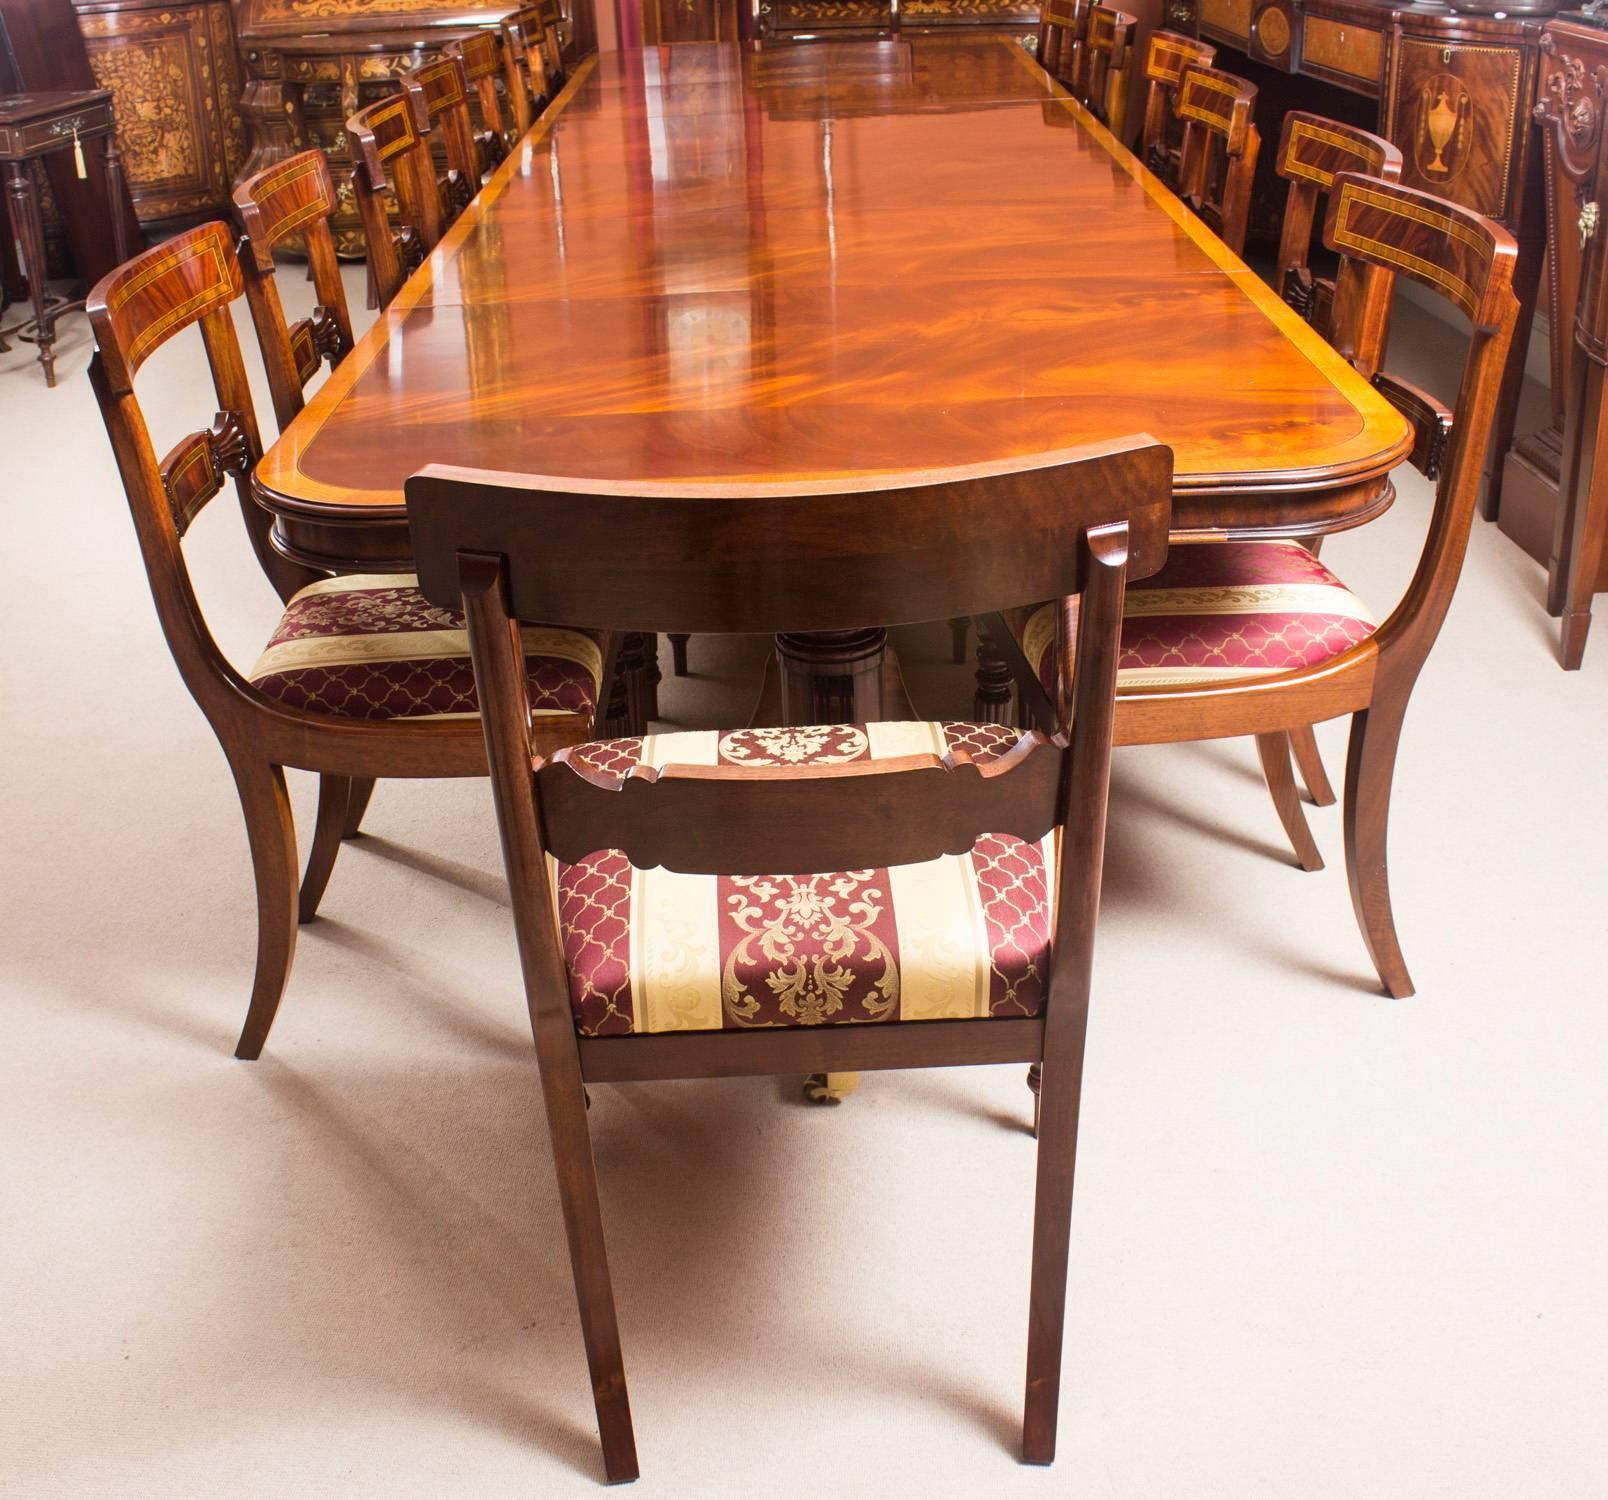 This Is A Superb Bespoke Handmade Large Dining Set In Elegant Regency  Style, Crafted In